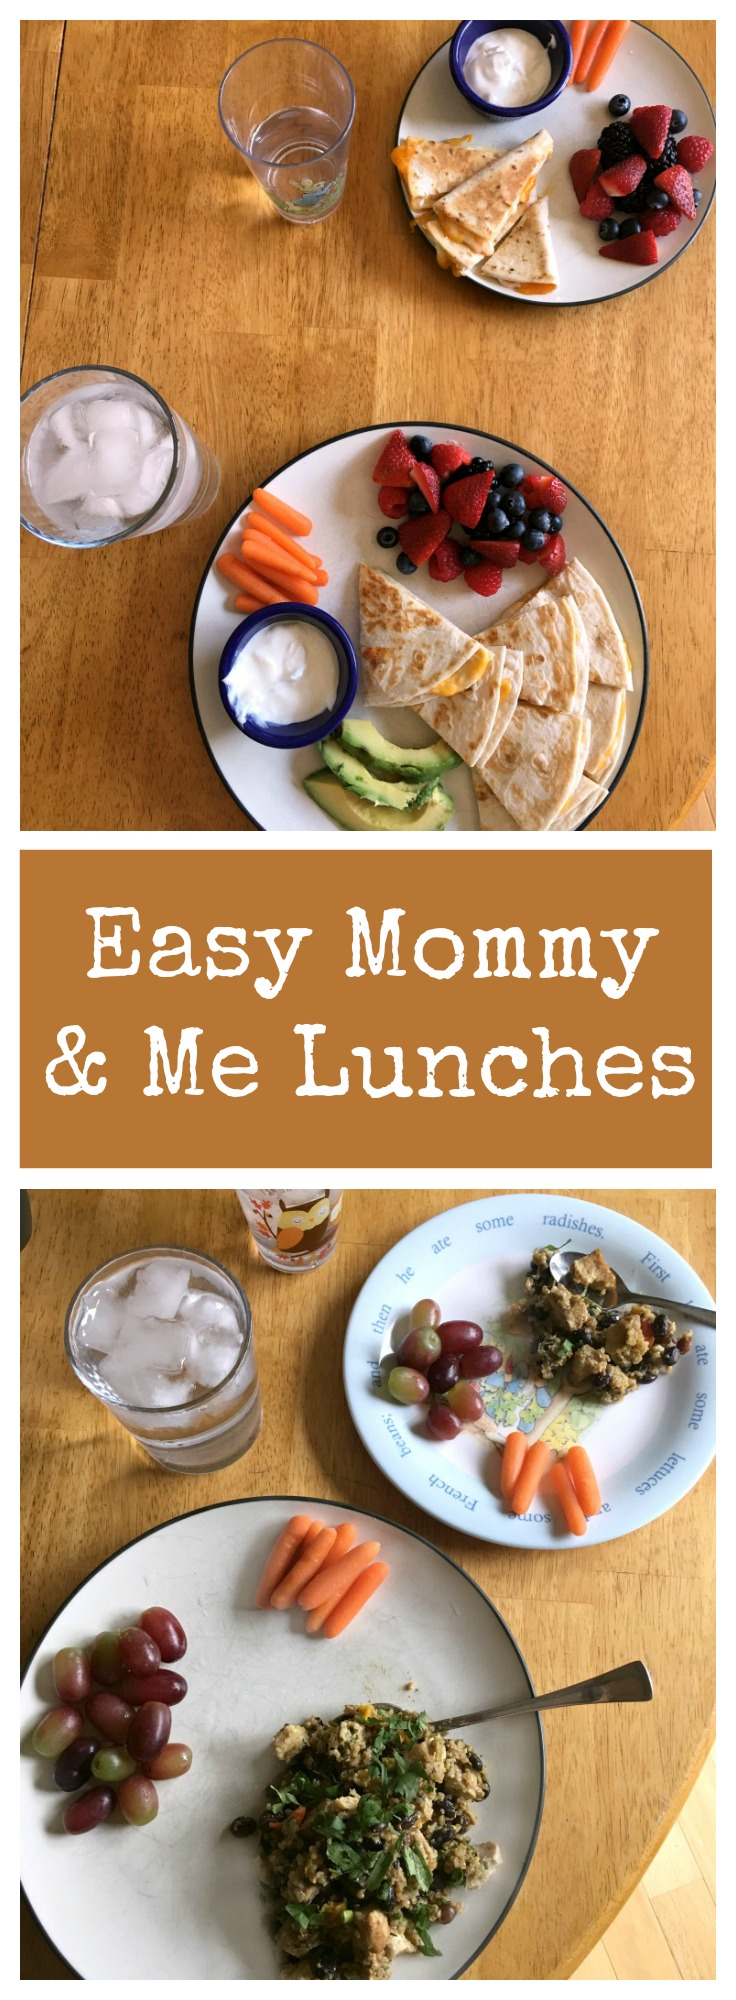 Easy Mommy and Me Lunch Ideas for Kids